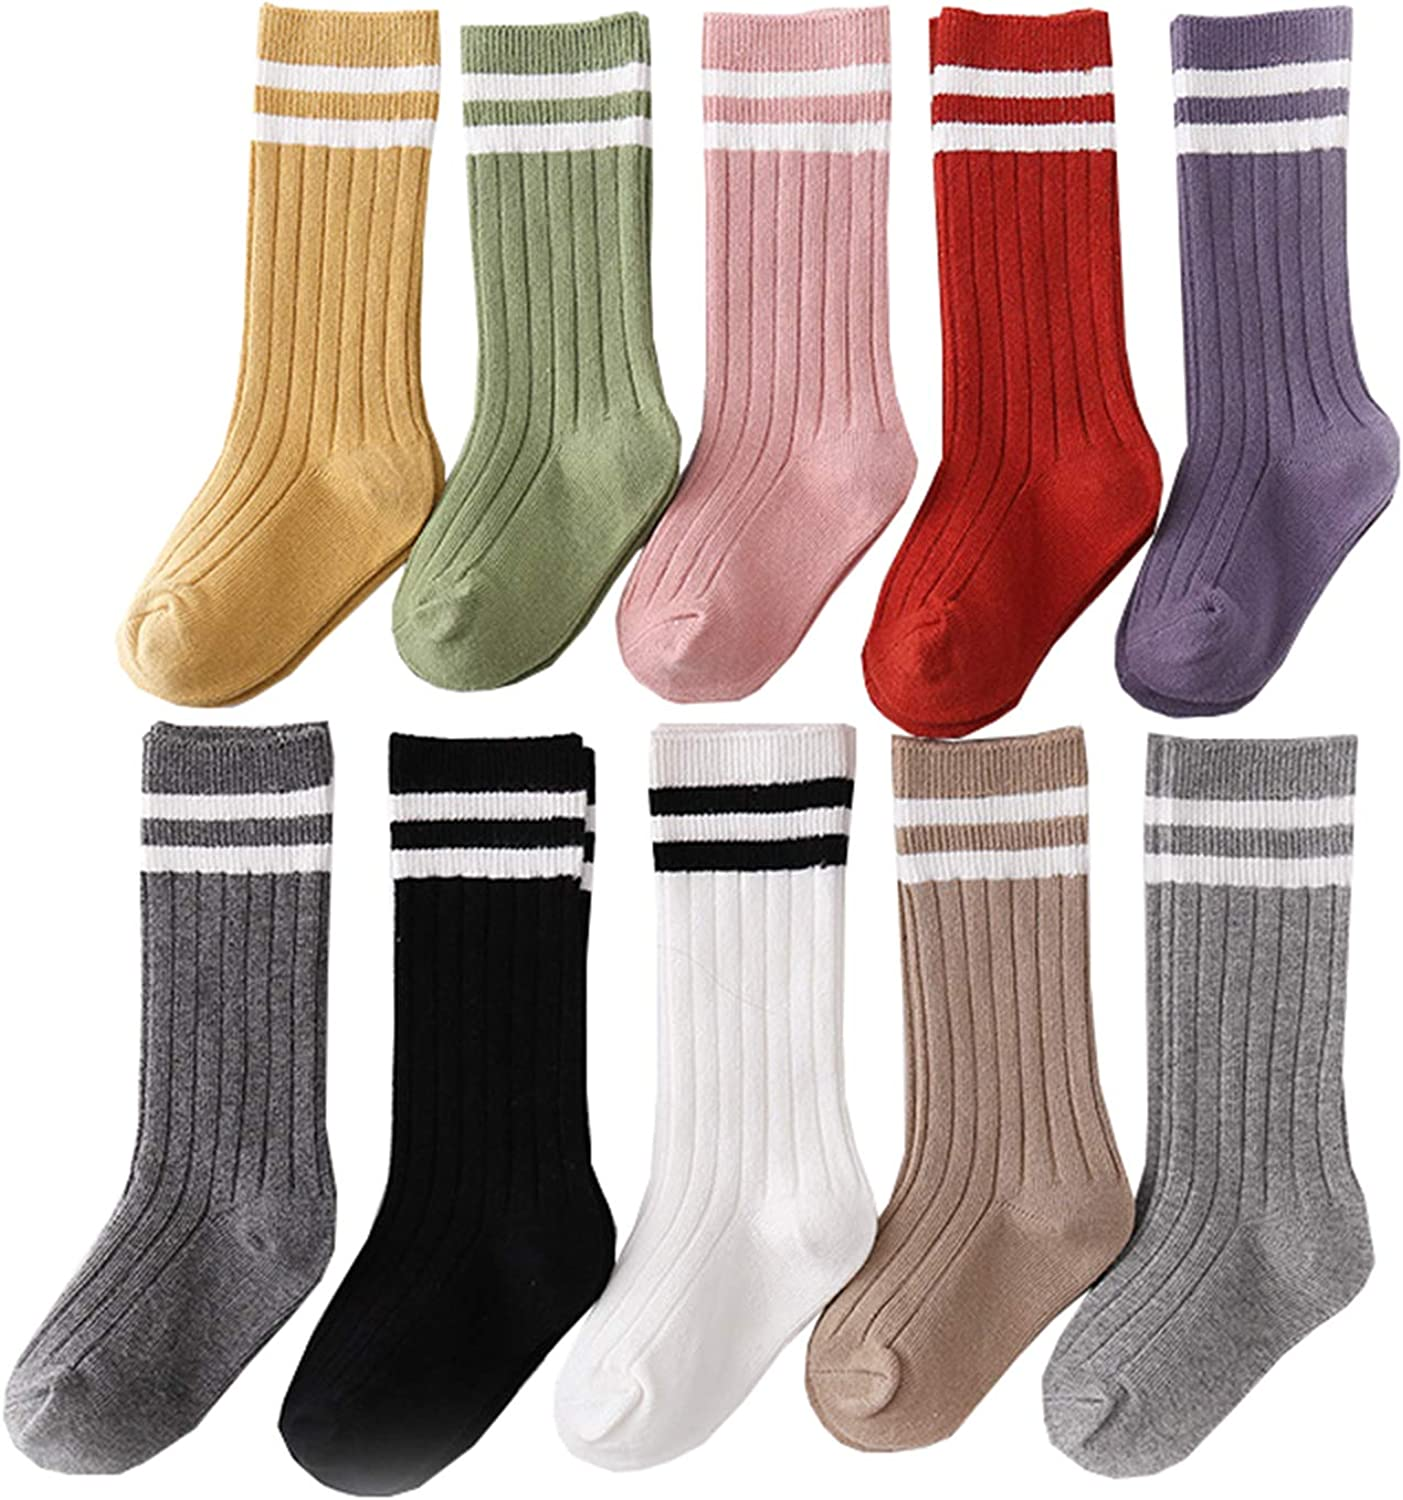 Mubineo Baby and Toddler Girl Comfy Cotton Socks